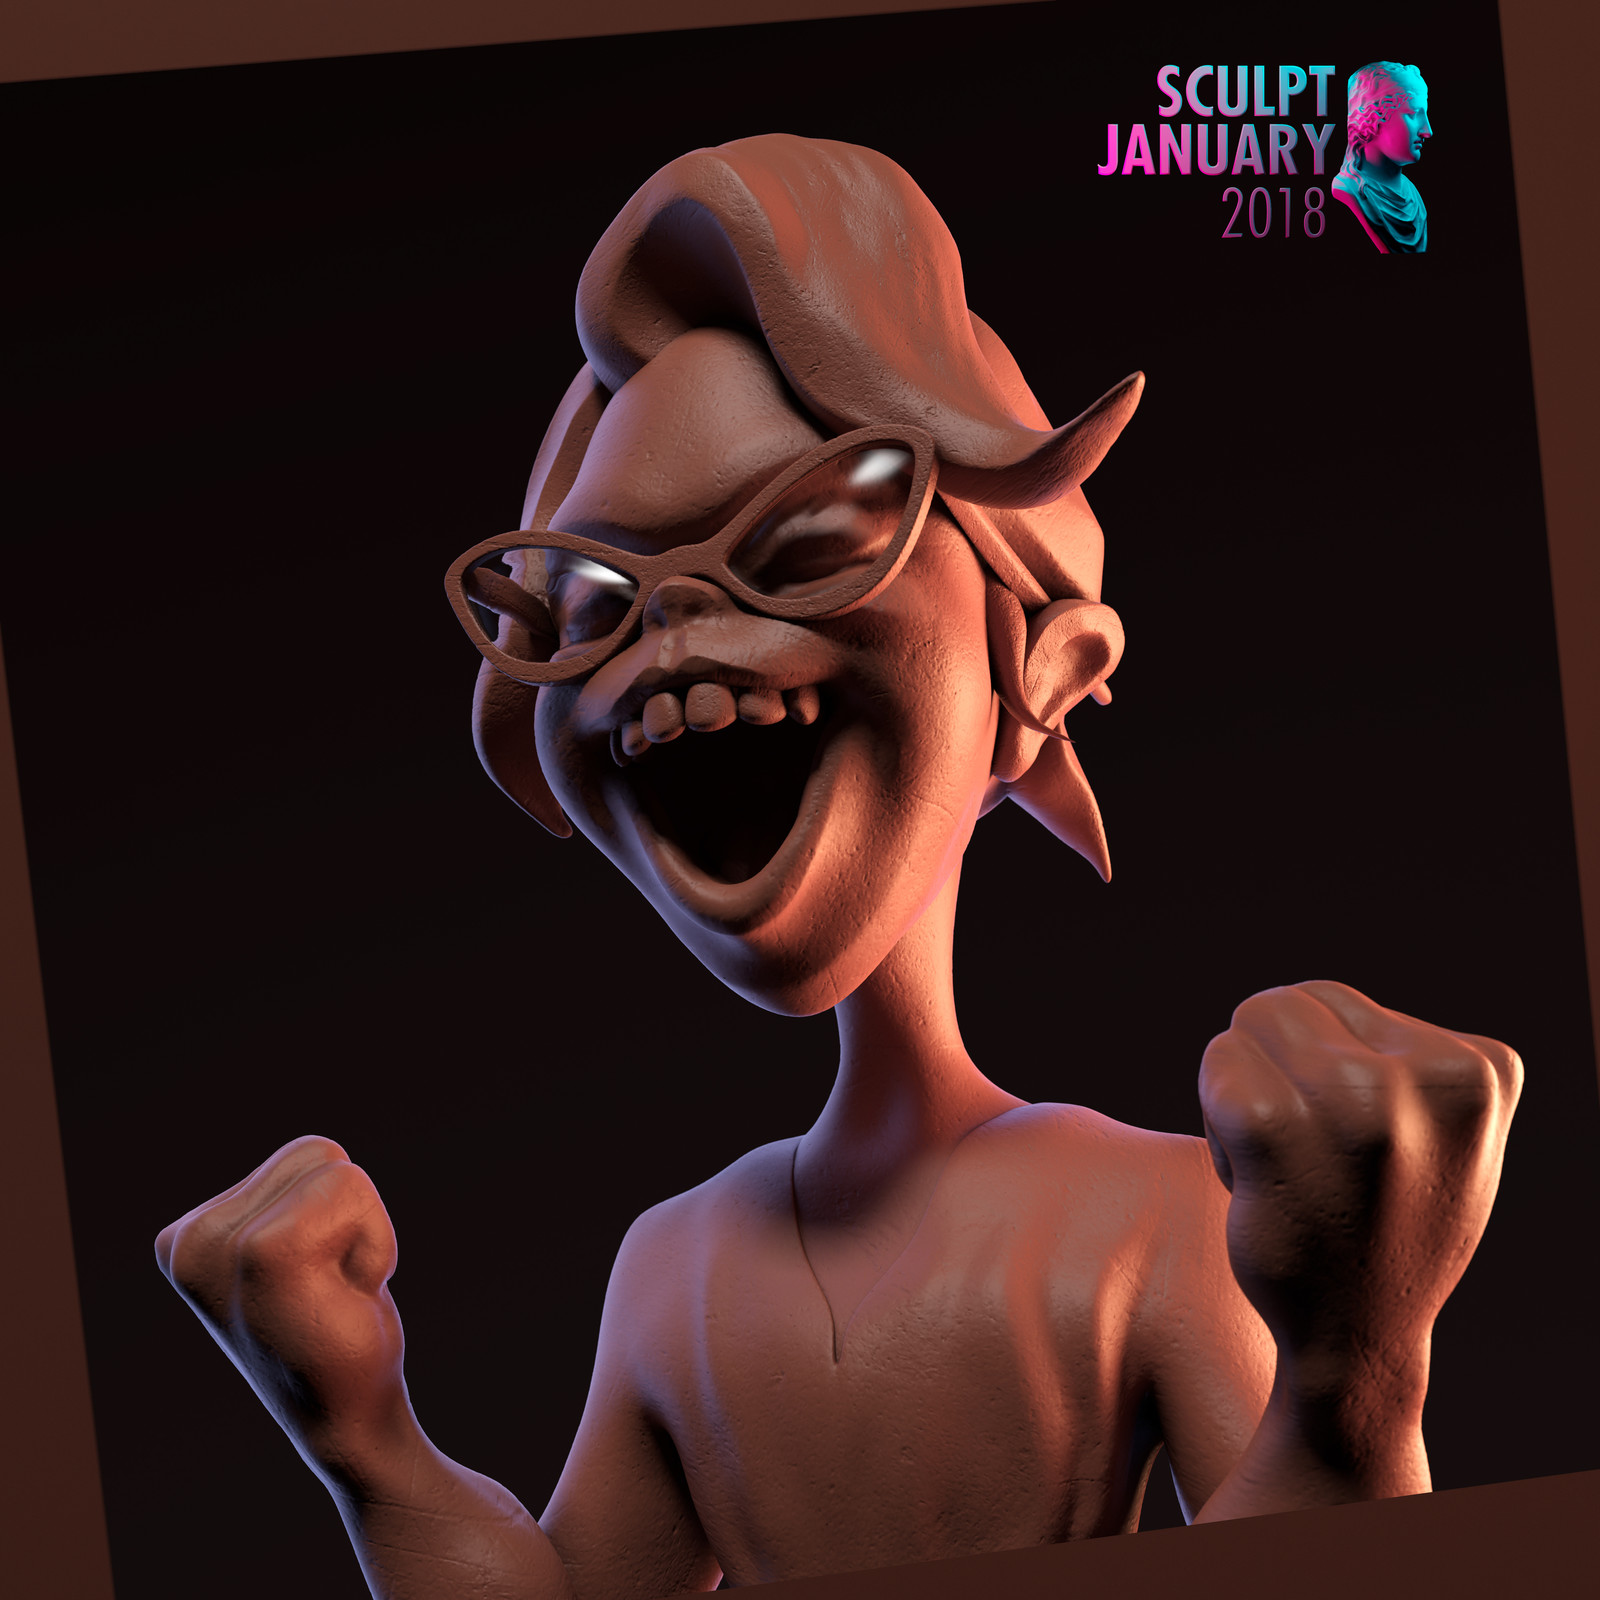 Sculpt January 18 - Day 03 - Excitement